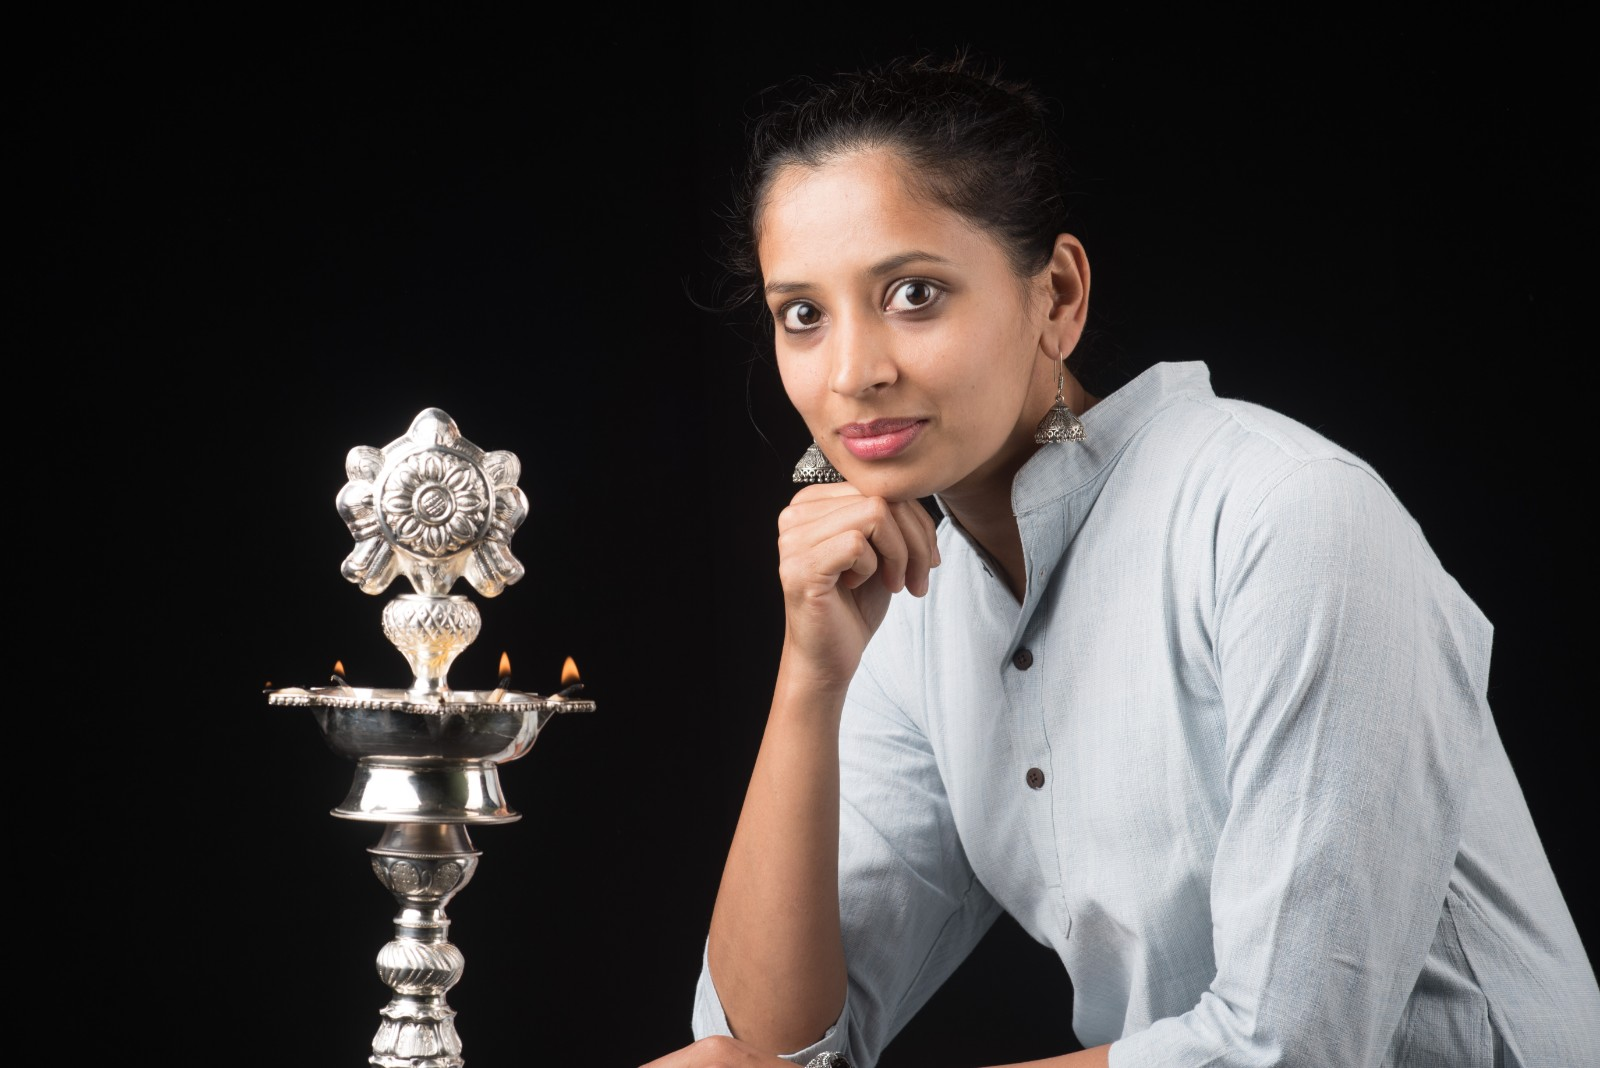 Indian Woman in front of a lamp